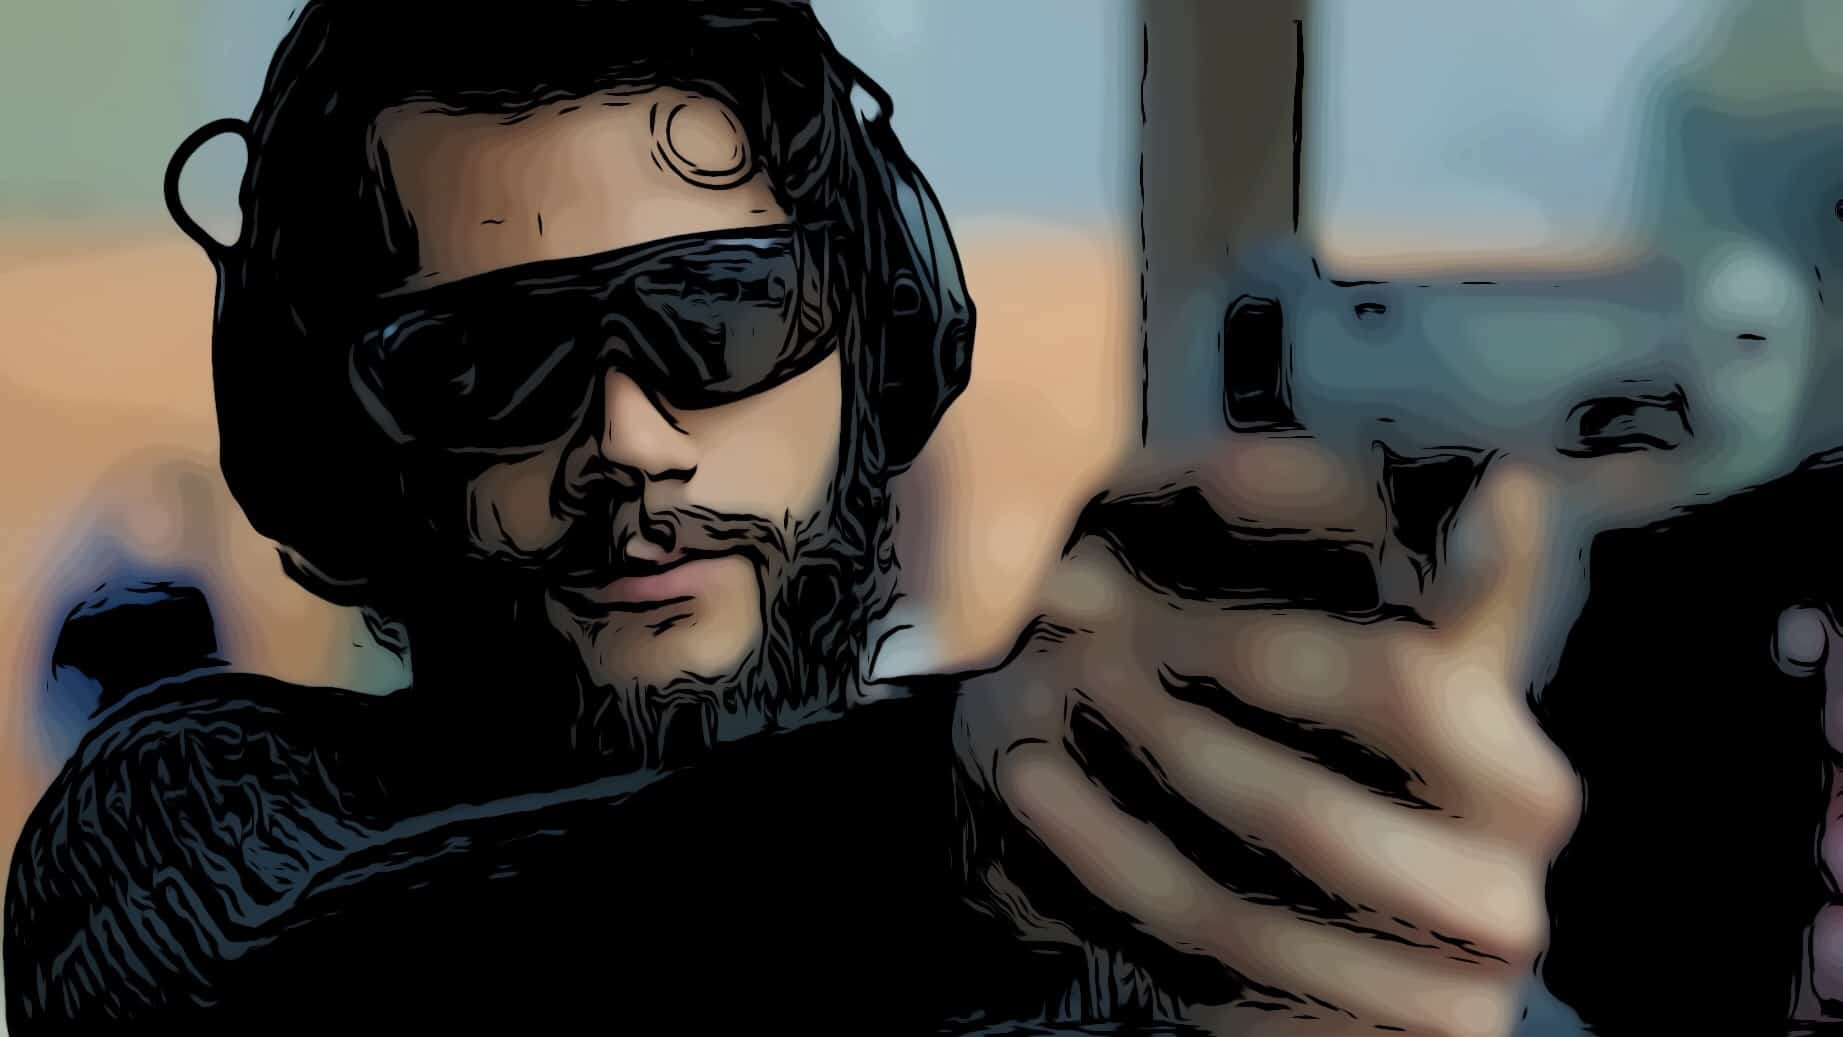 Scene from American Assassin for best assassin movies post.